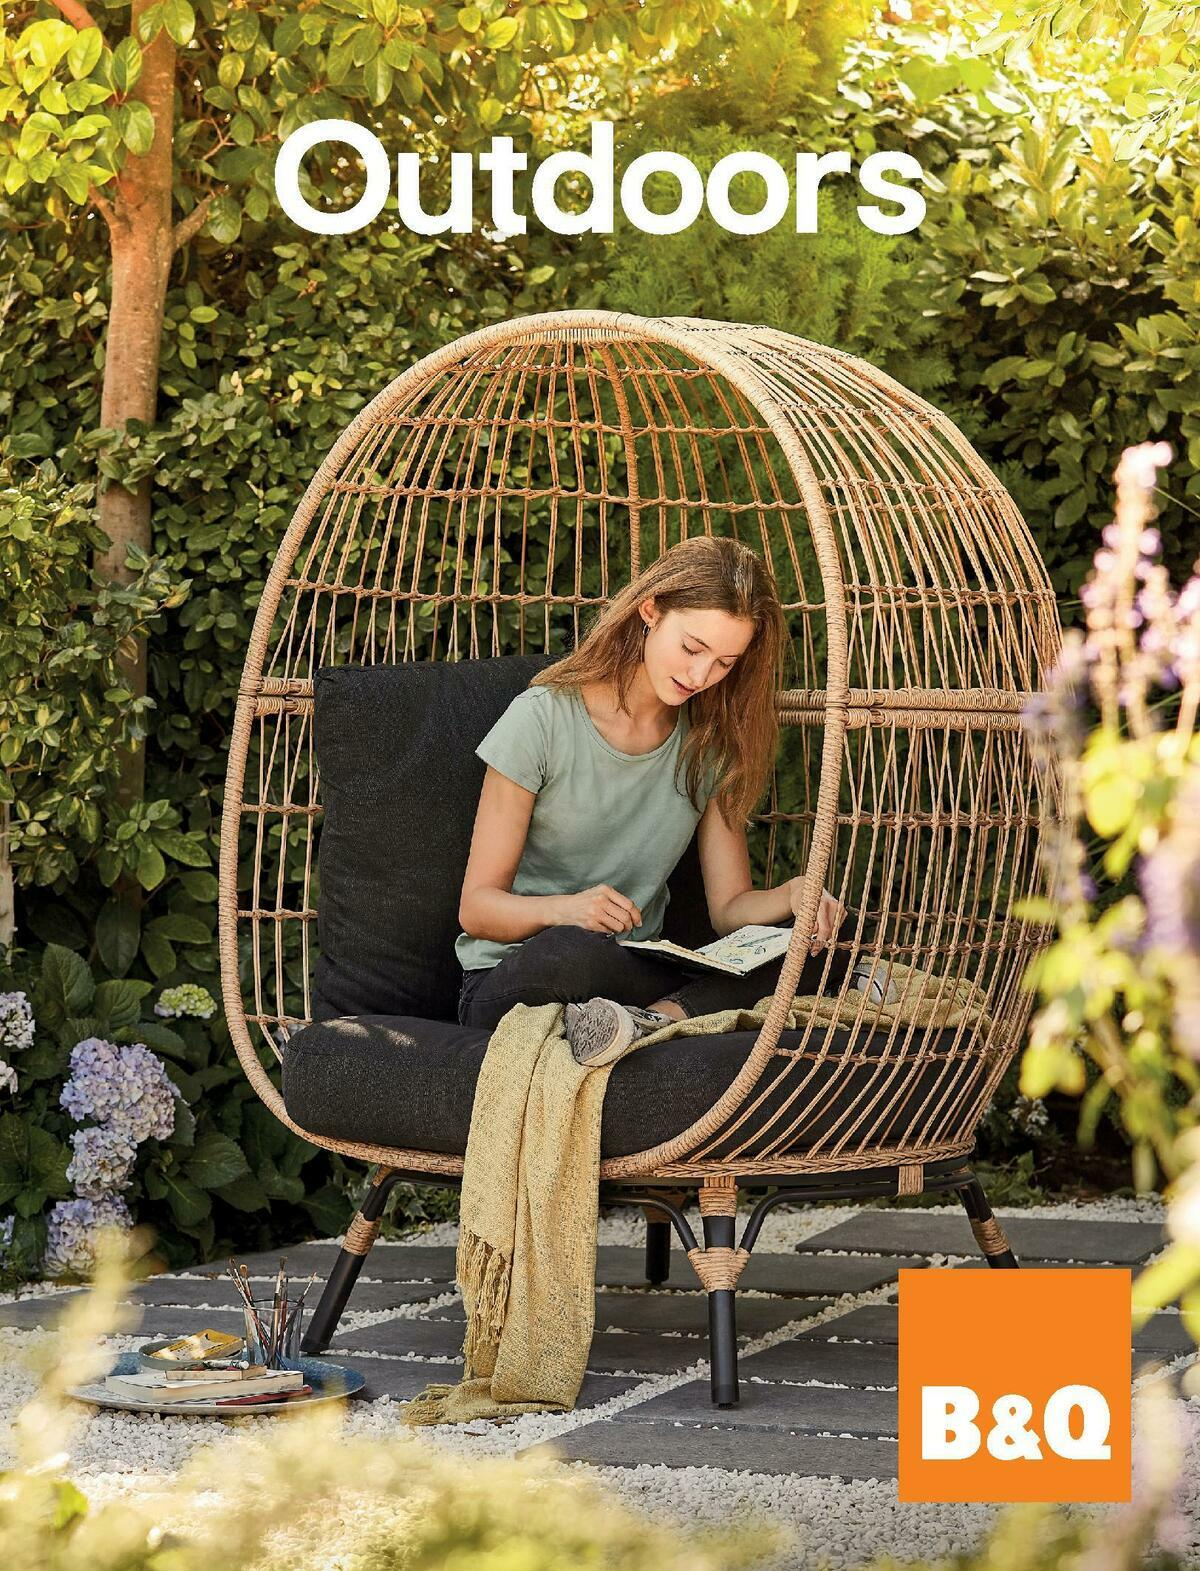 B&Q Outdoors Offers from March 1